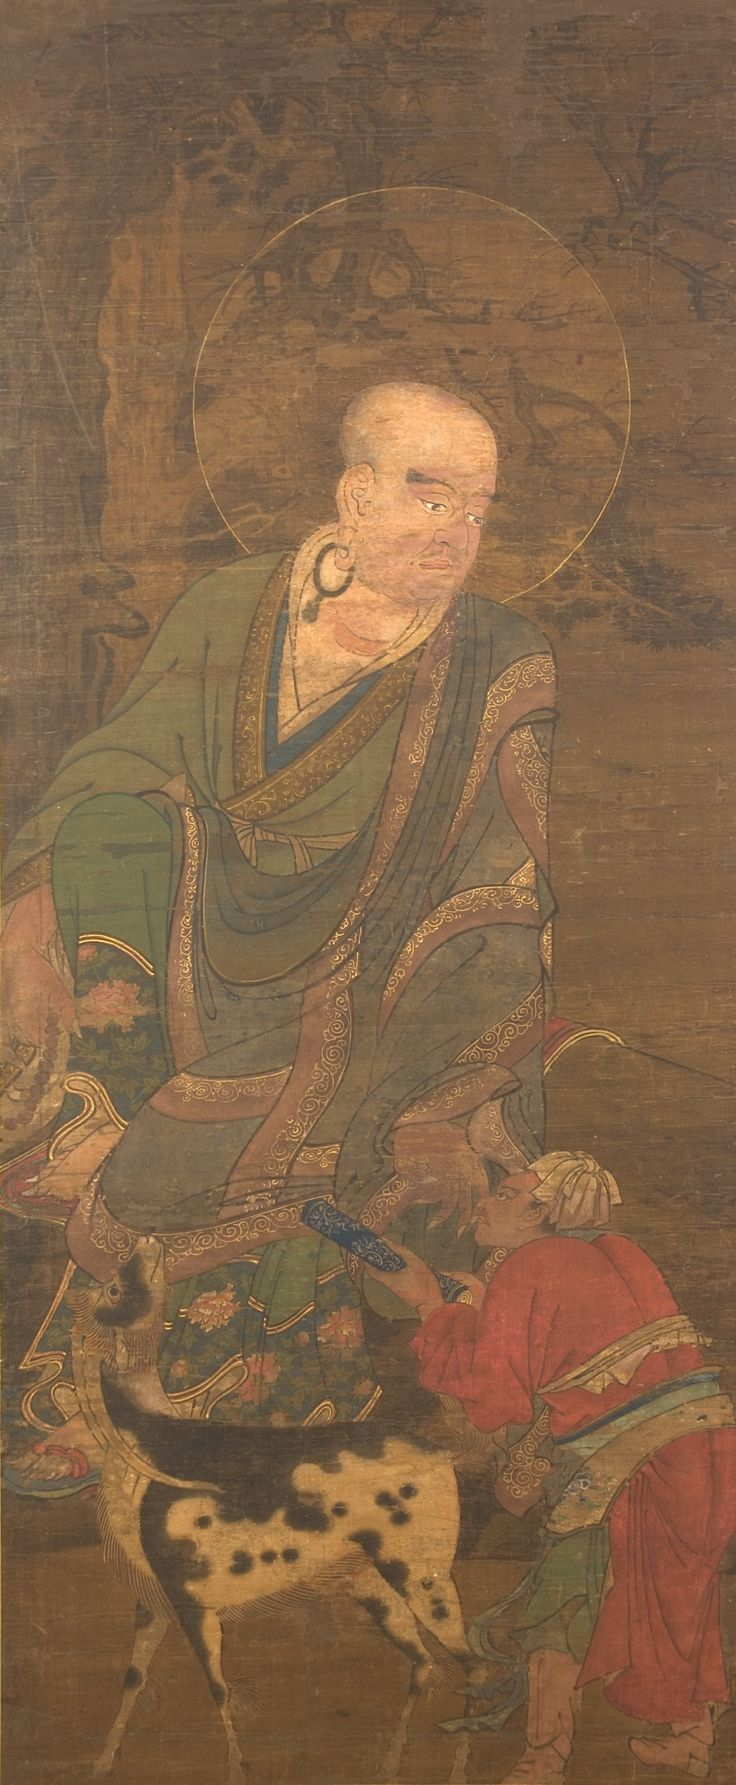 Rakan 羅漢図. Unidentified Artist. 16th century. Period: Muromachi period (1336–1573). Date: 15th–16th century. Culture: Japan. Medium: Hanging scroll; ink, color, gold, and cut gold on silk.